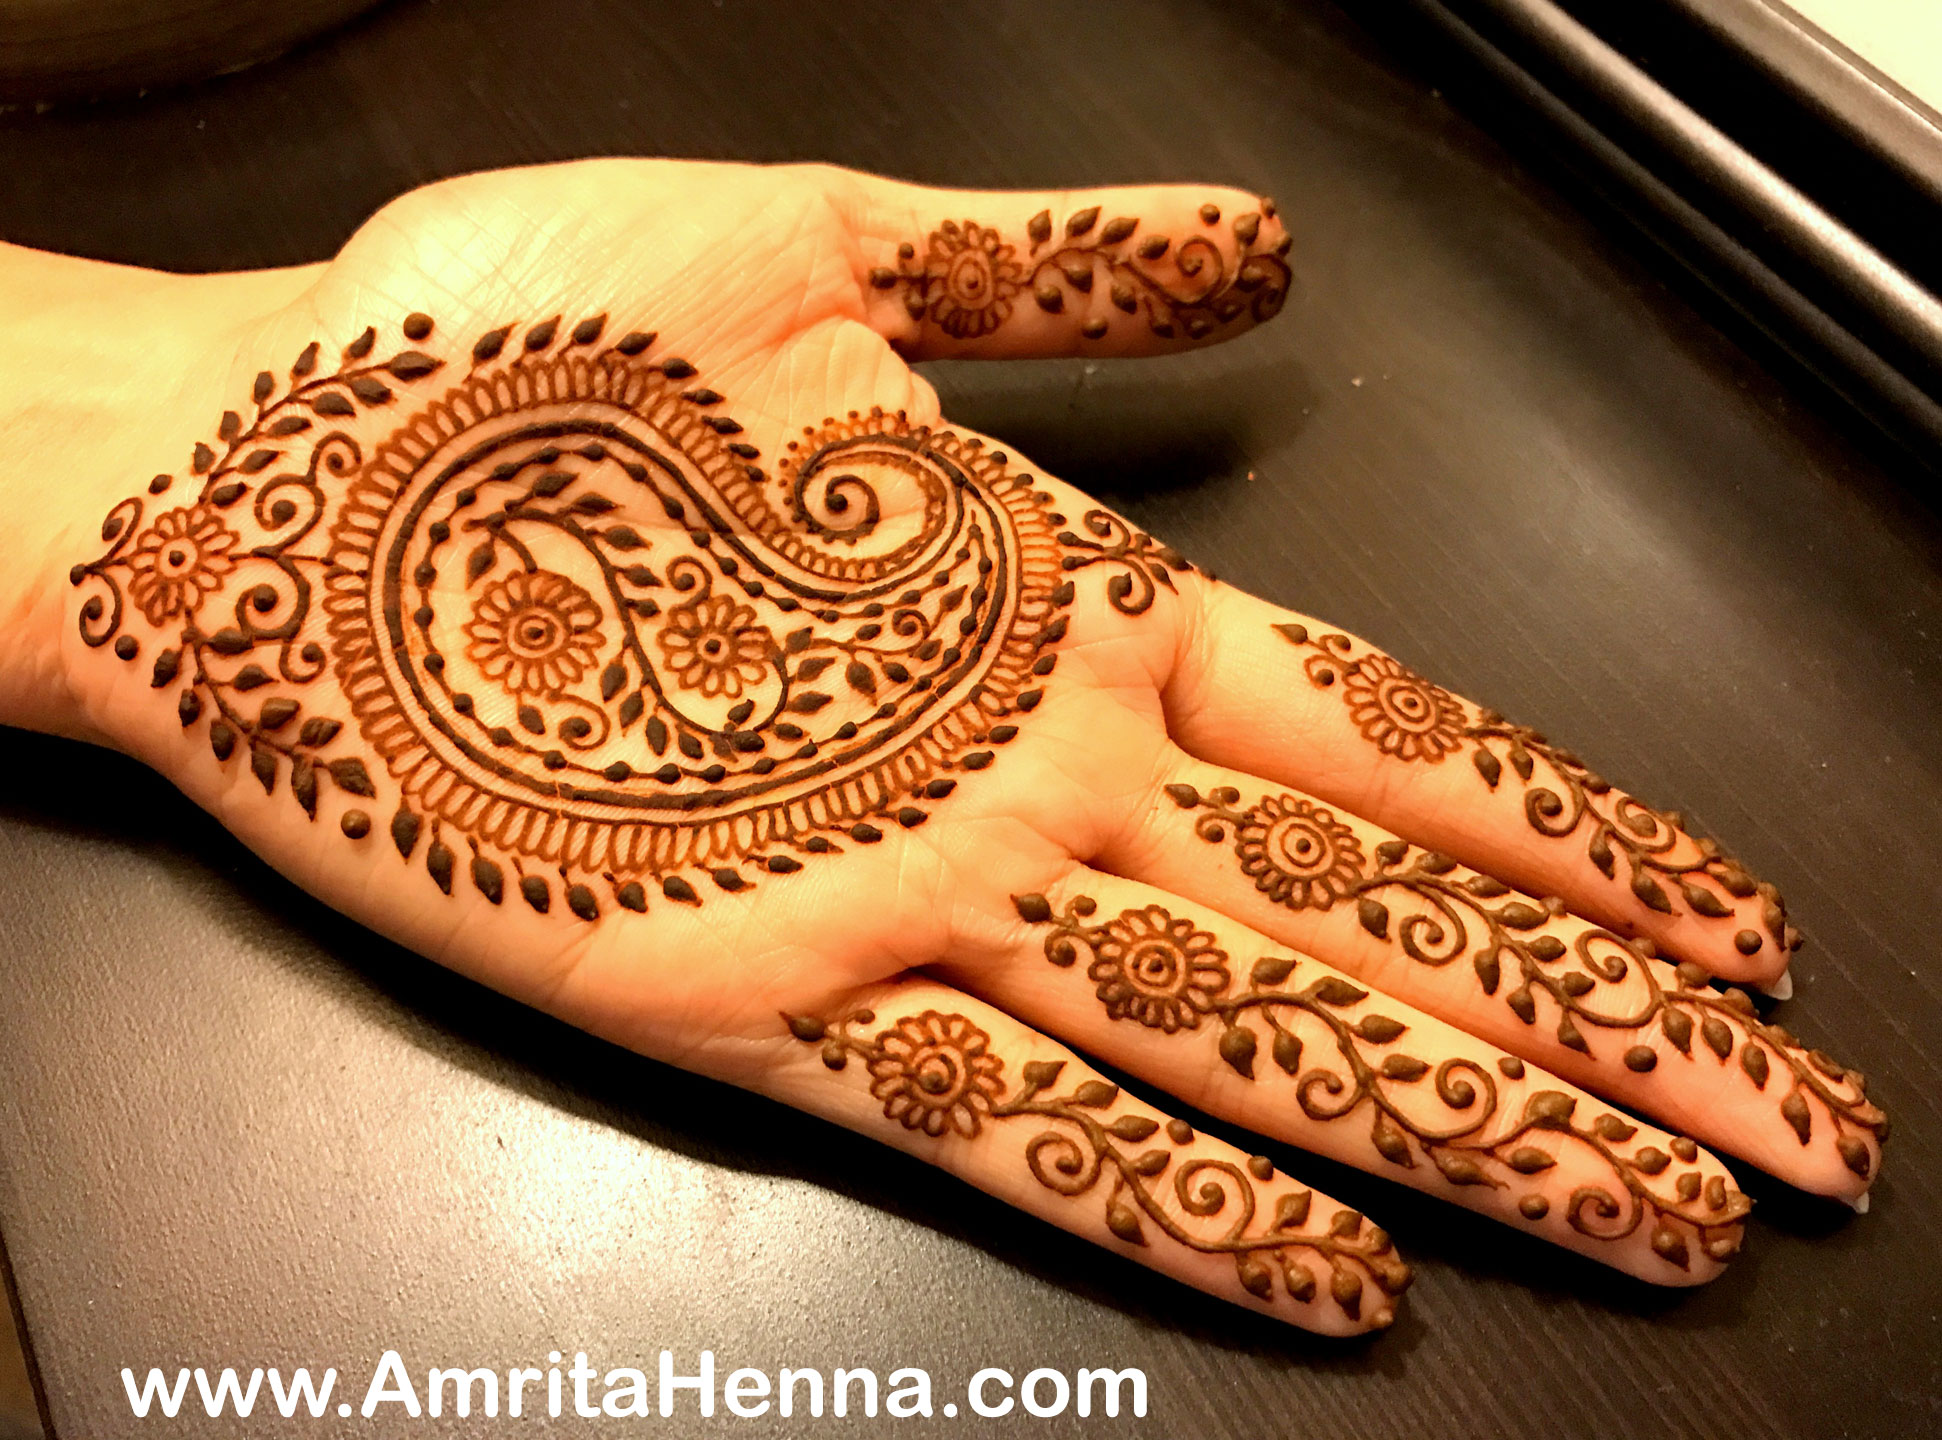 Traditional Henna Tattoo Designs: 5 TRADITIONAL PAISLEY HENNA MEHNDI DESIGNS YOU CANT MISS